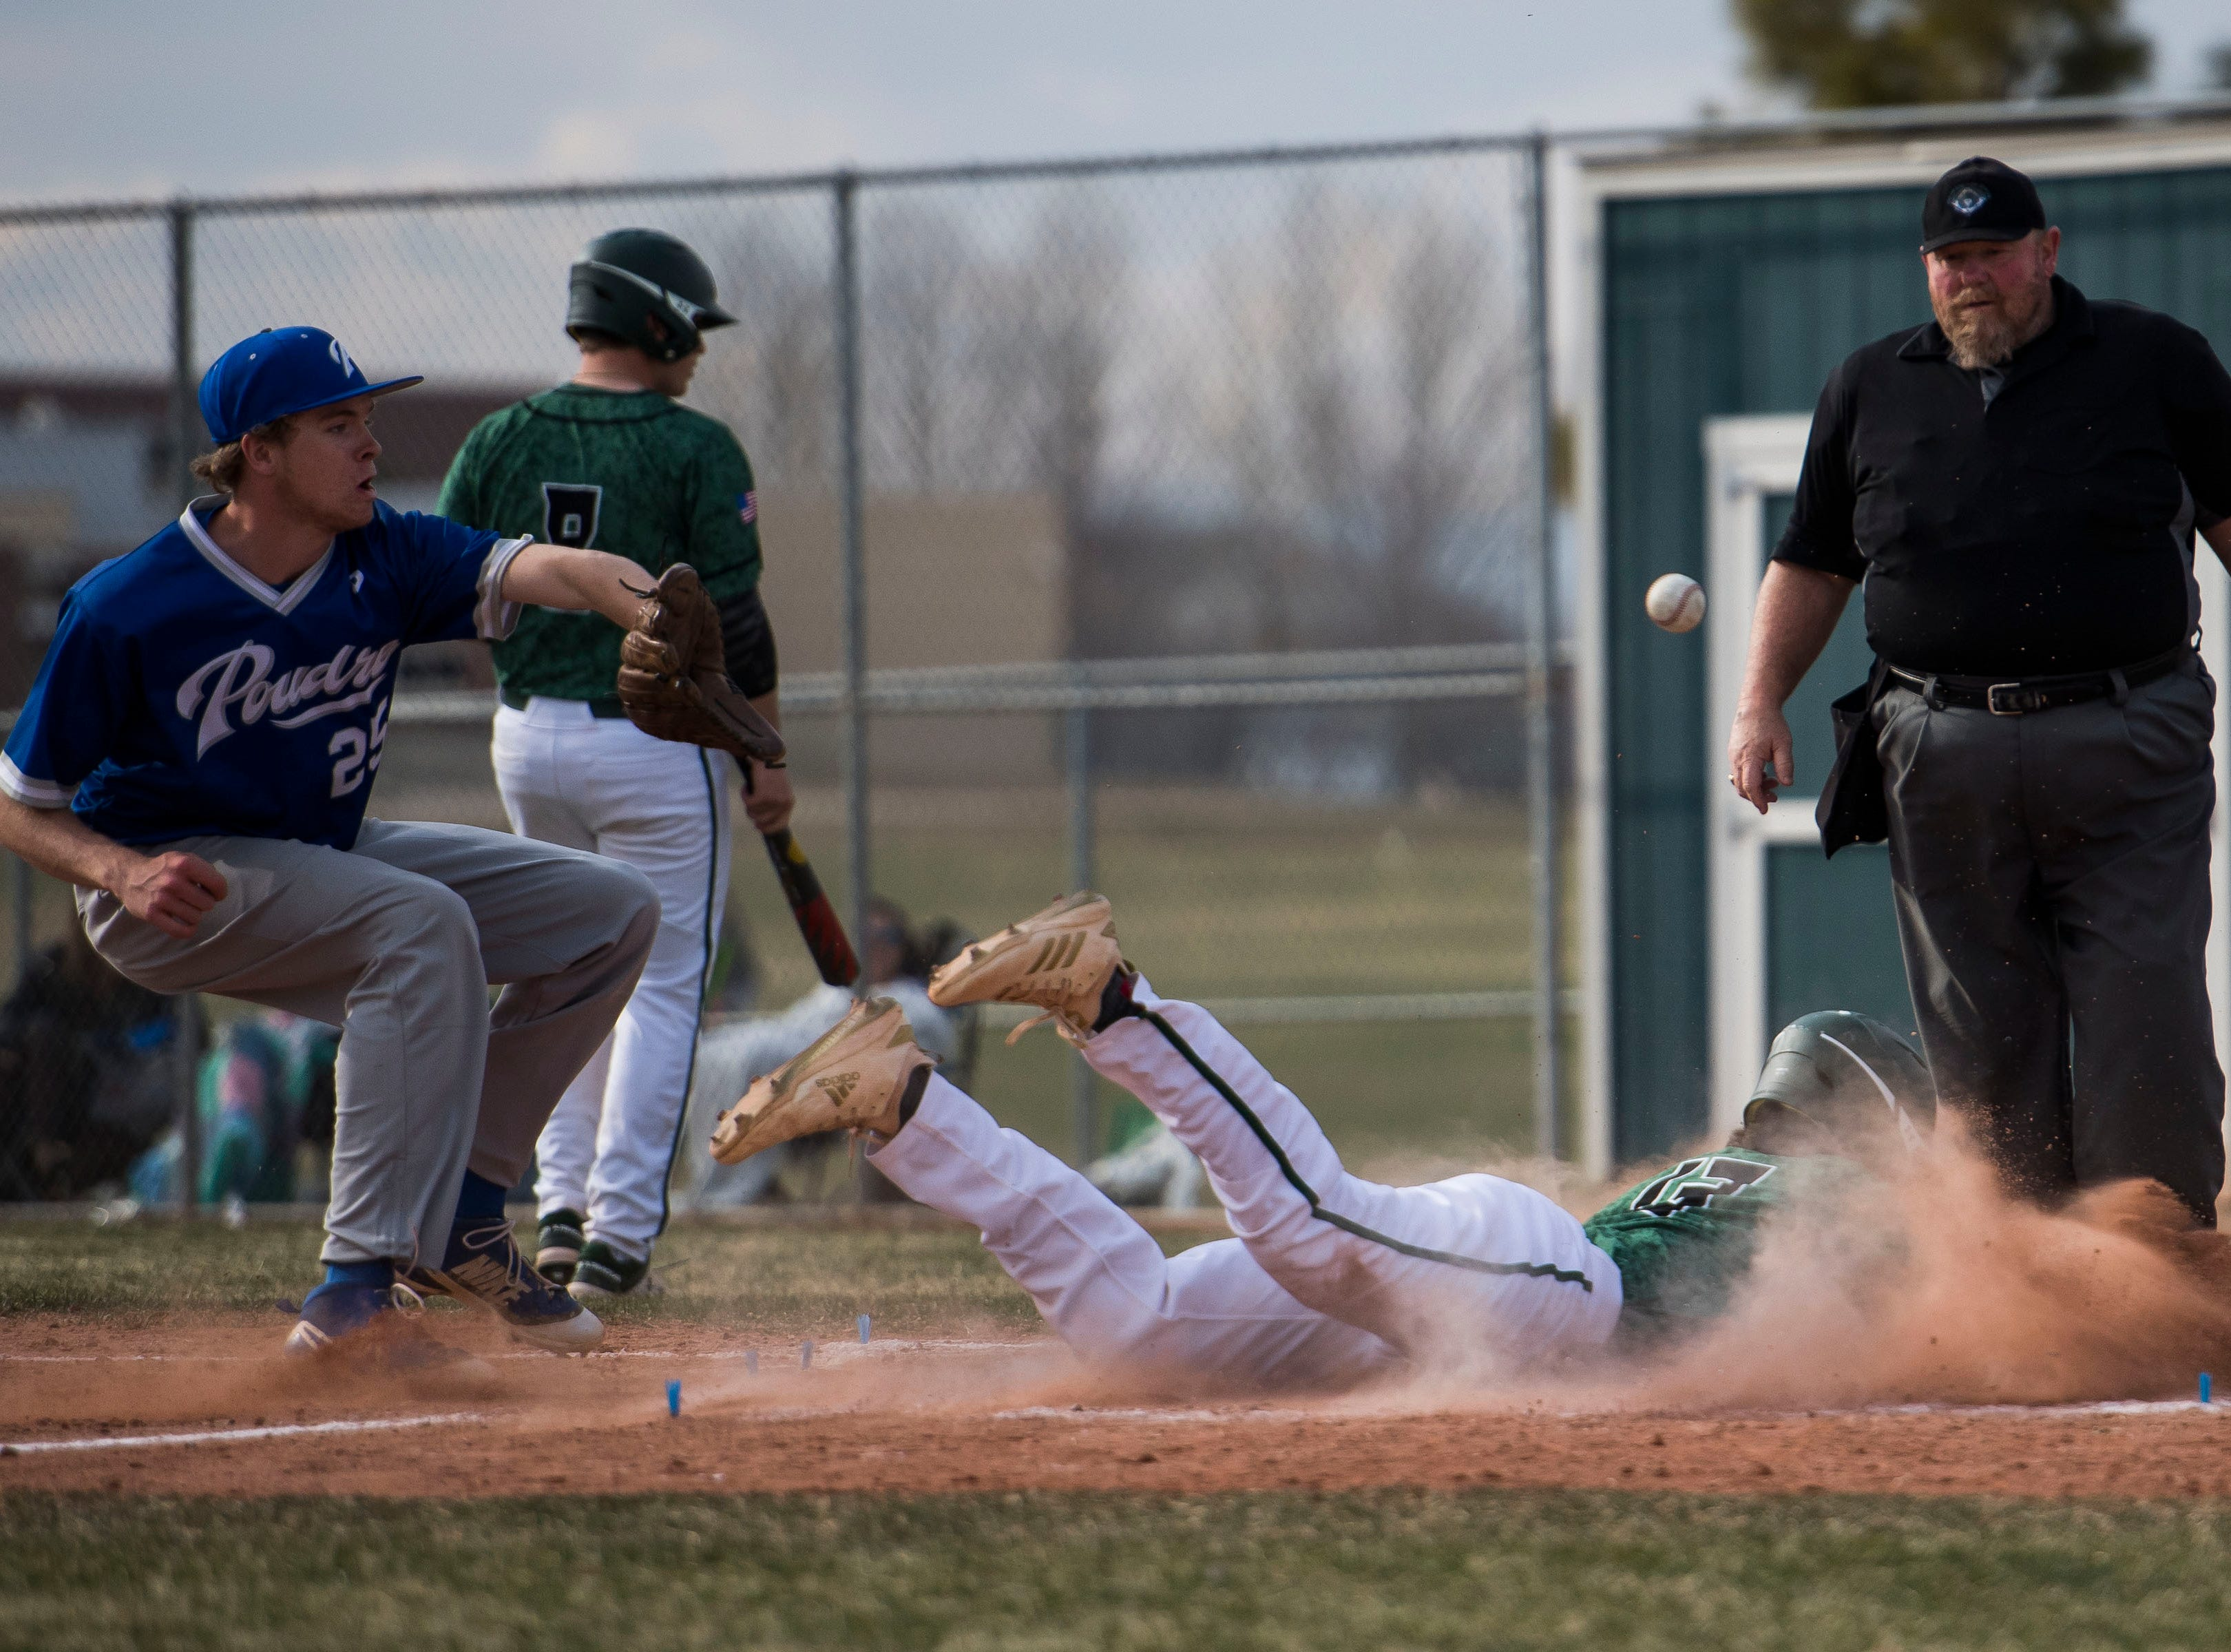 Fossil Ridge High School runner Jack Cosper (13) slides into home before Poudre High School pitcher Chris Wallace (25) can get the tag on Wednesday, April 3, 2019, at Fossil Ridge High School in Fort Collins, Colo.